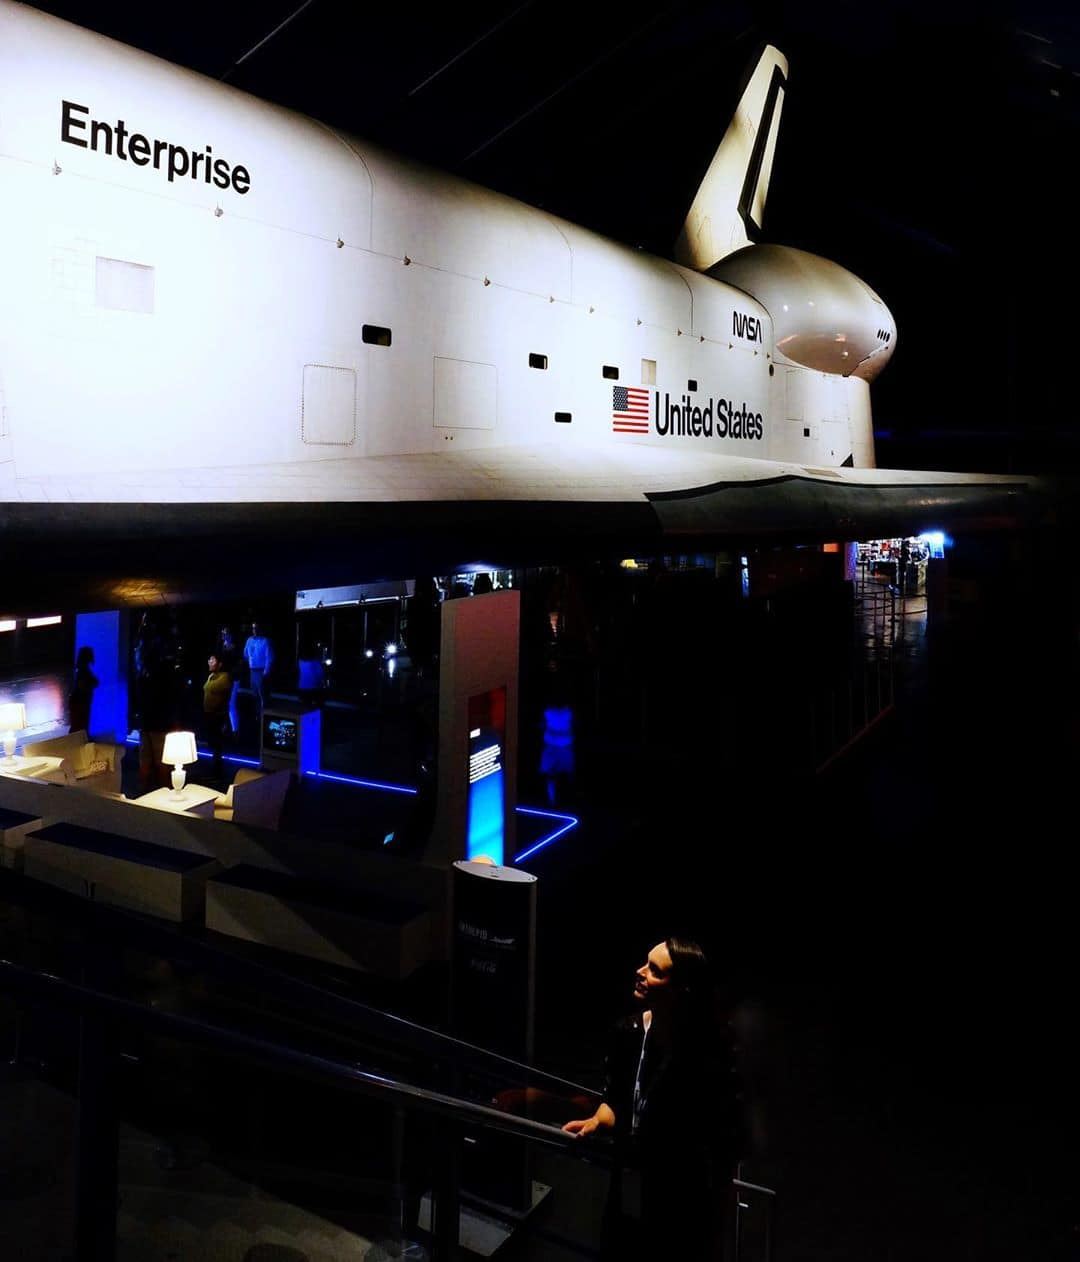 Enterprise on Display